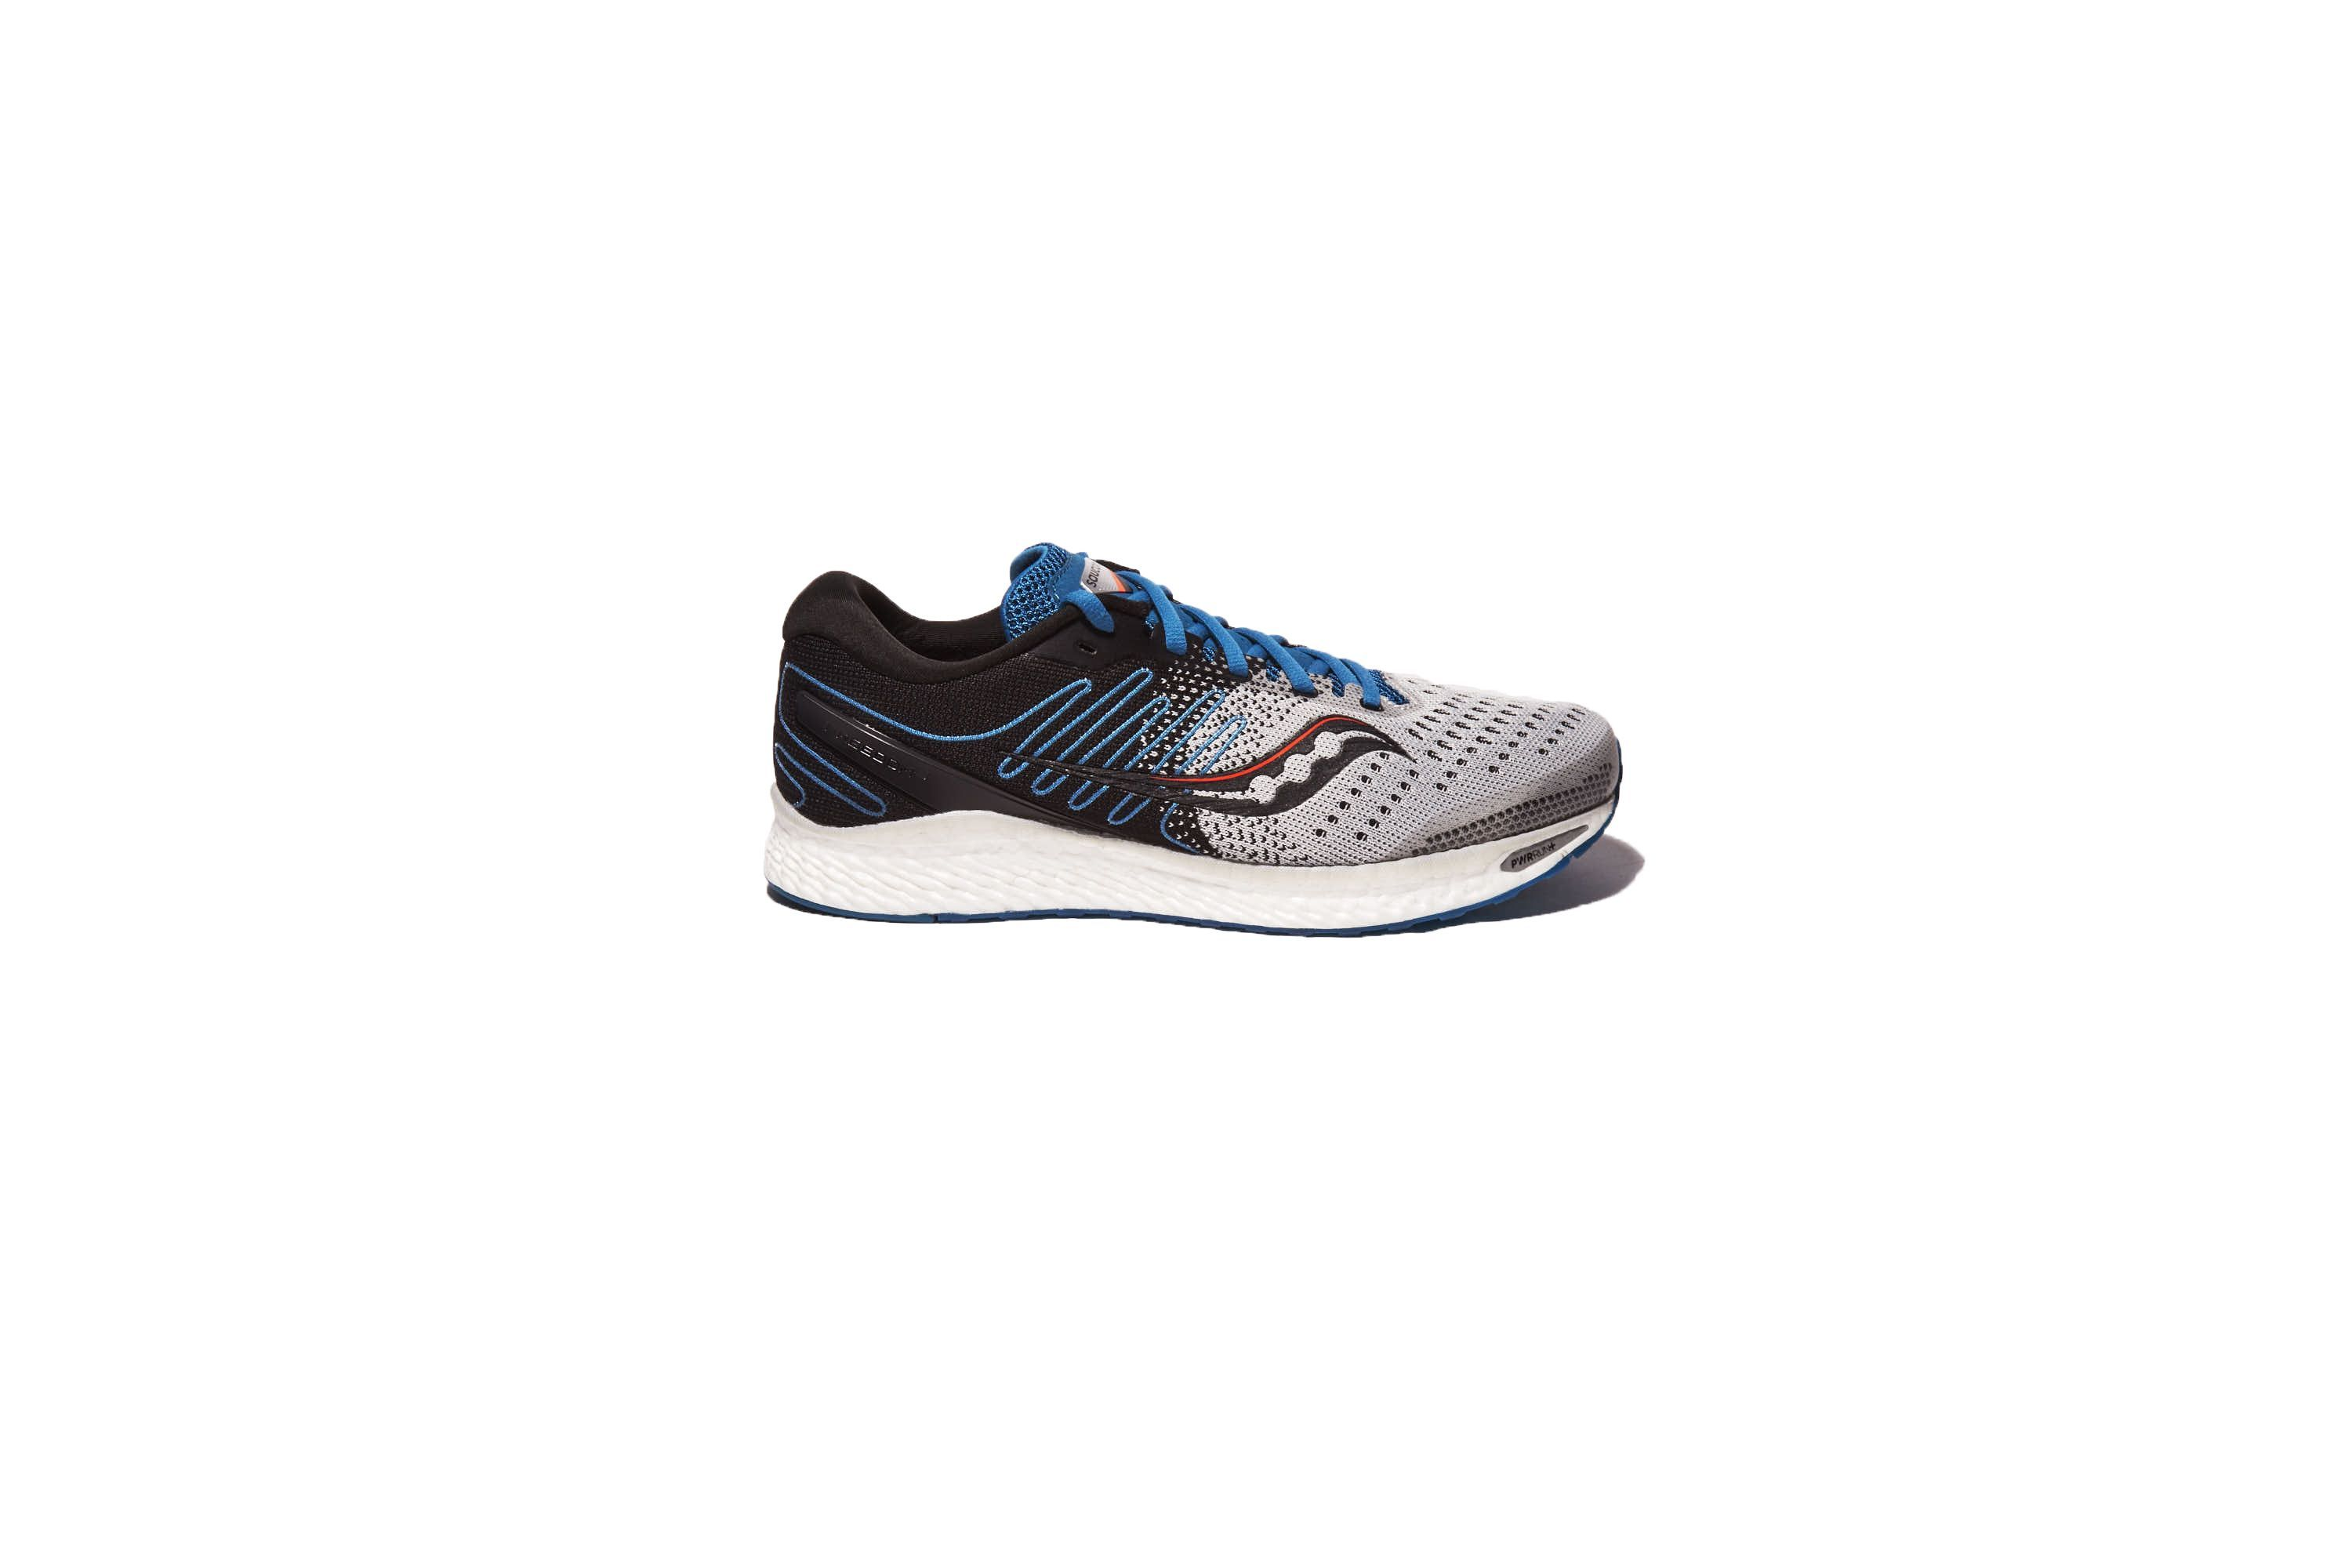 Saucony Freedom 3 Review 2020 | Best